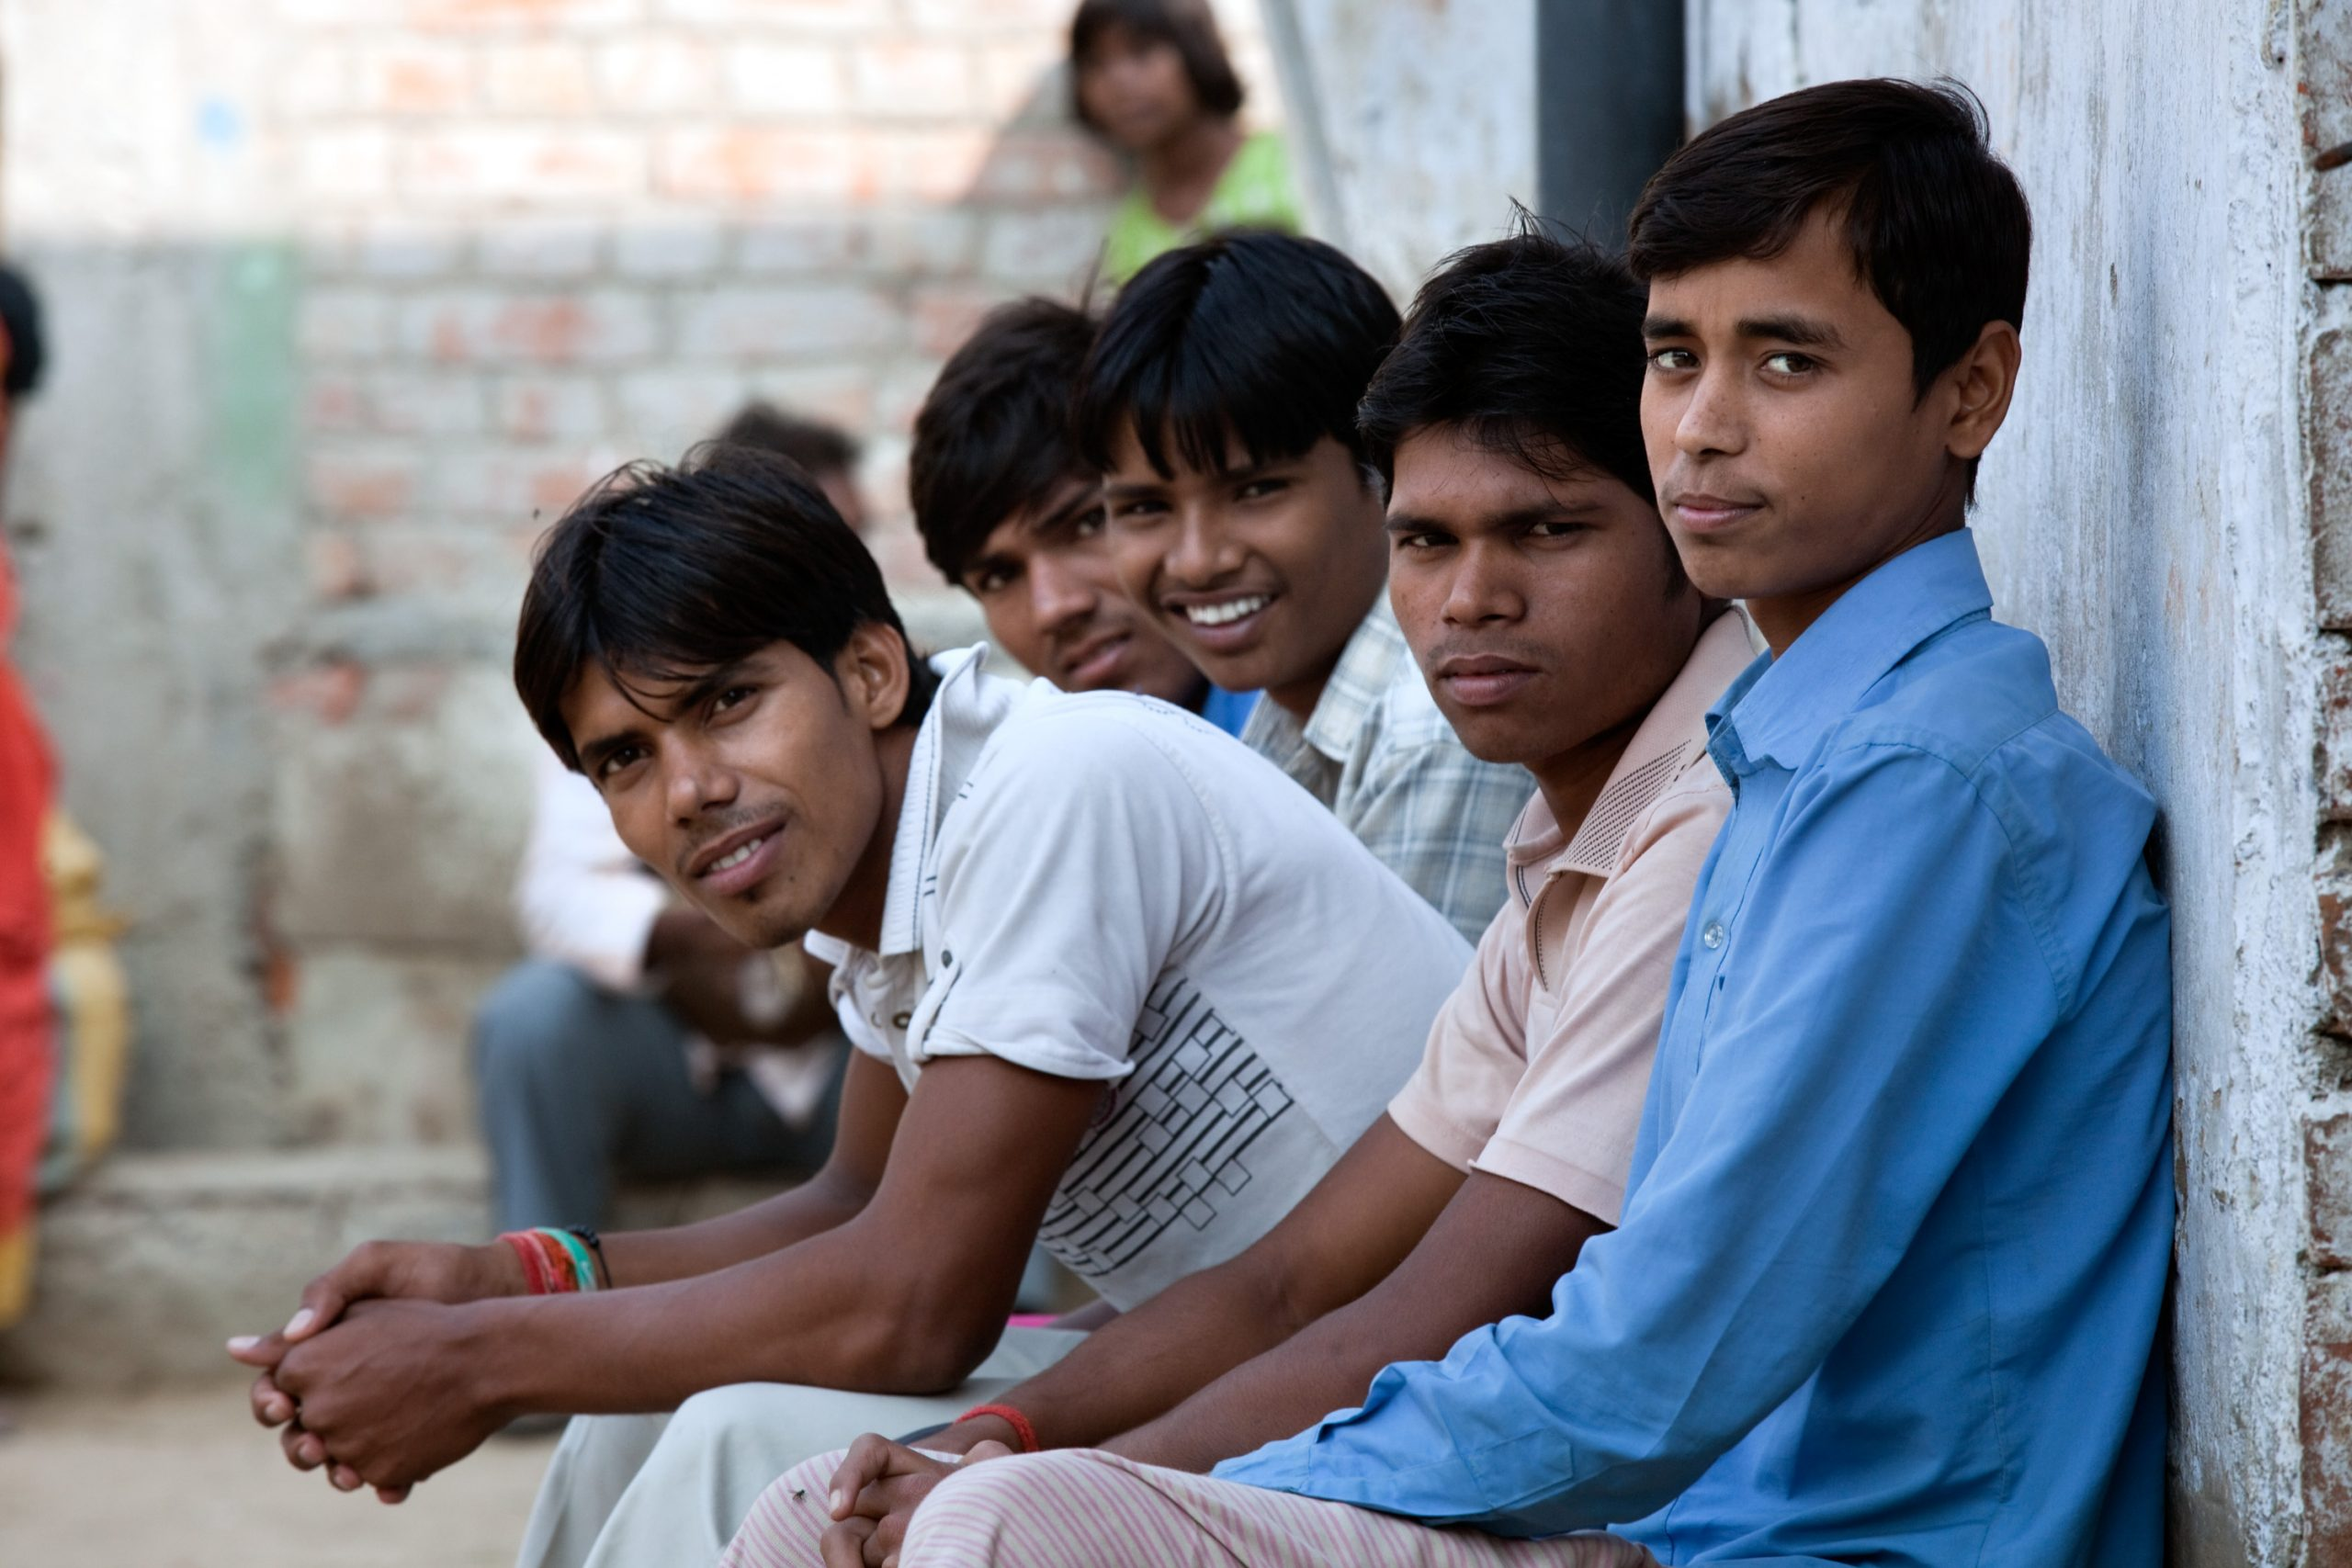 A group of adolescent boys in India sitting together